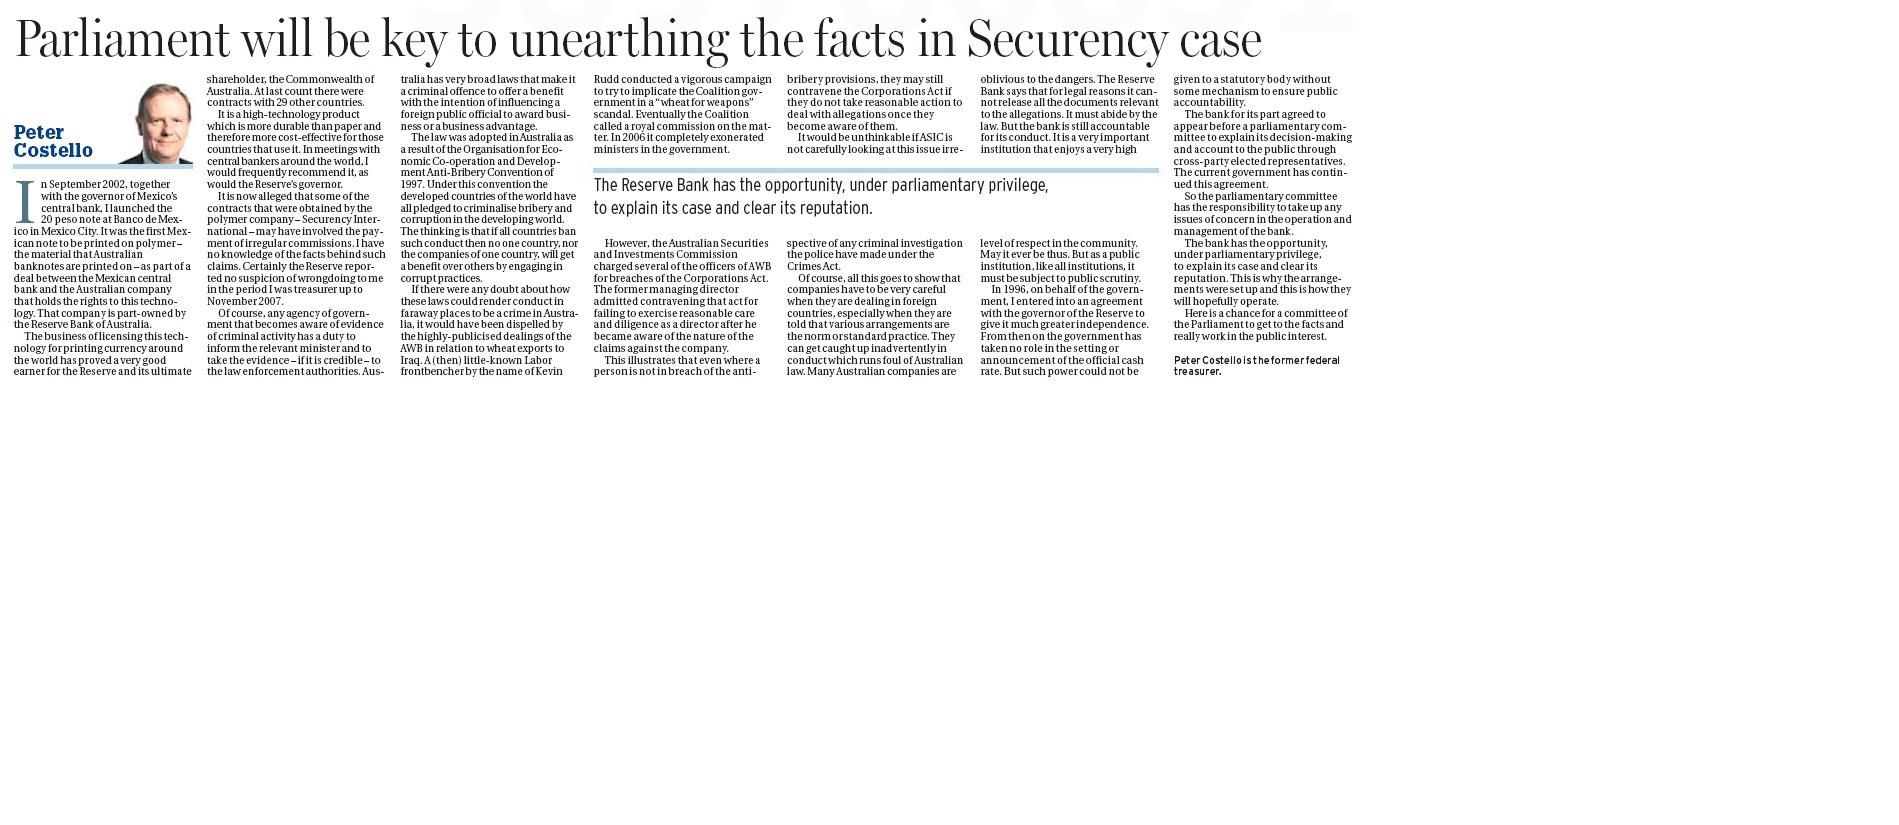 smh_-_parliament_will_be_key_to_unearthing_the_facts_in_securency_case_-_23_august_2012jpg